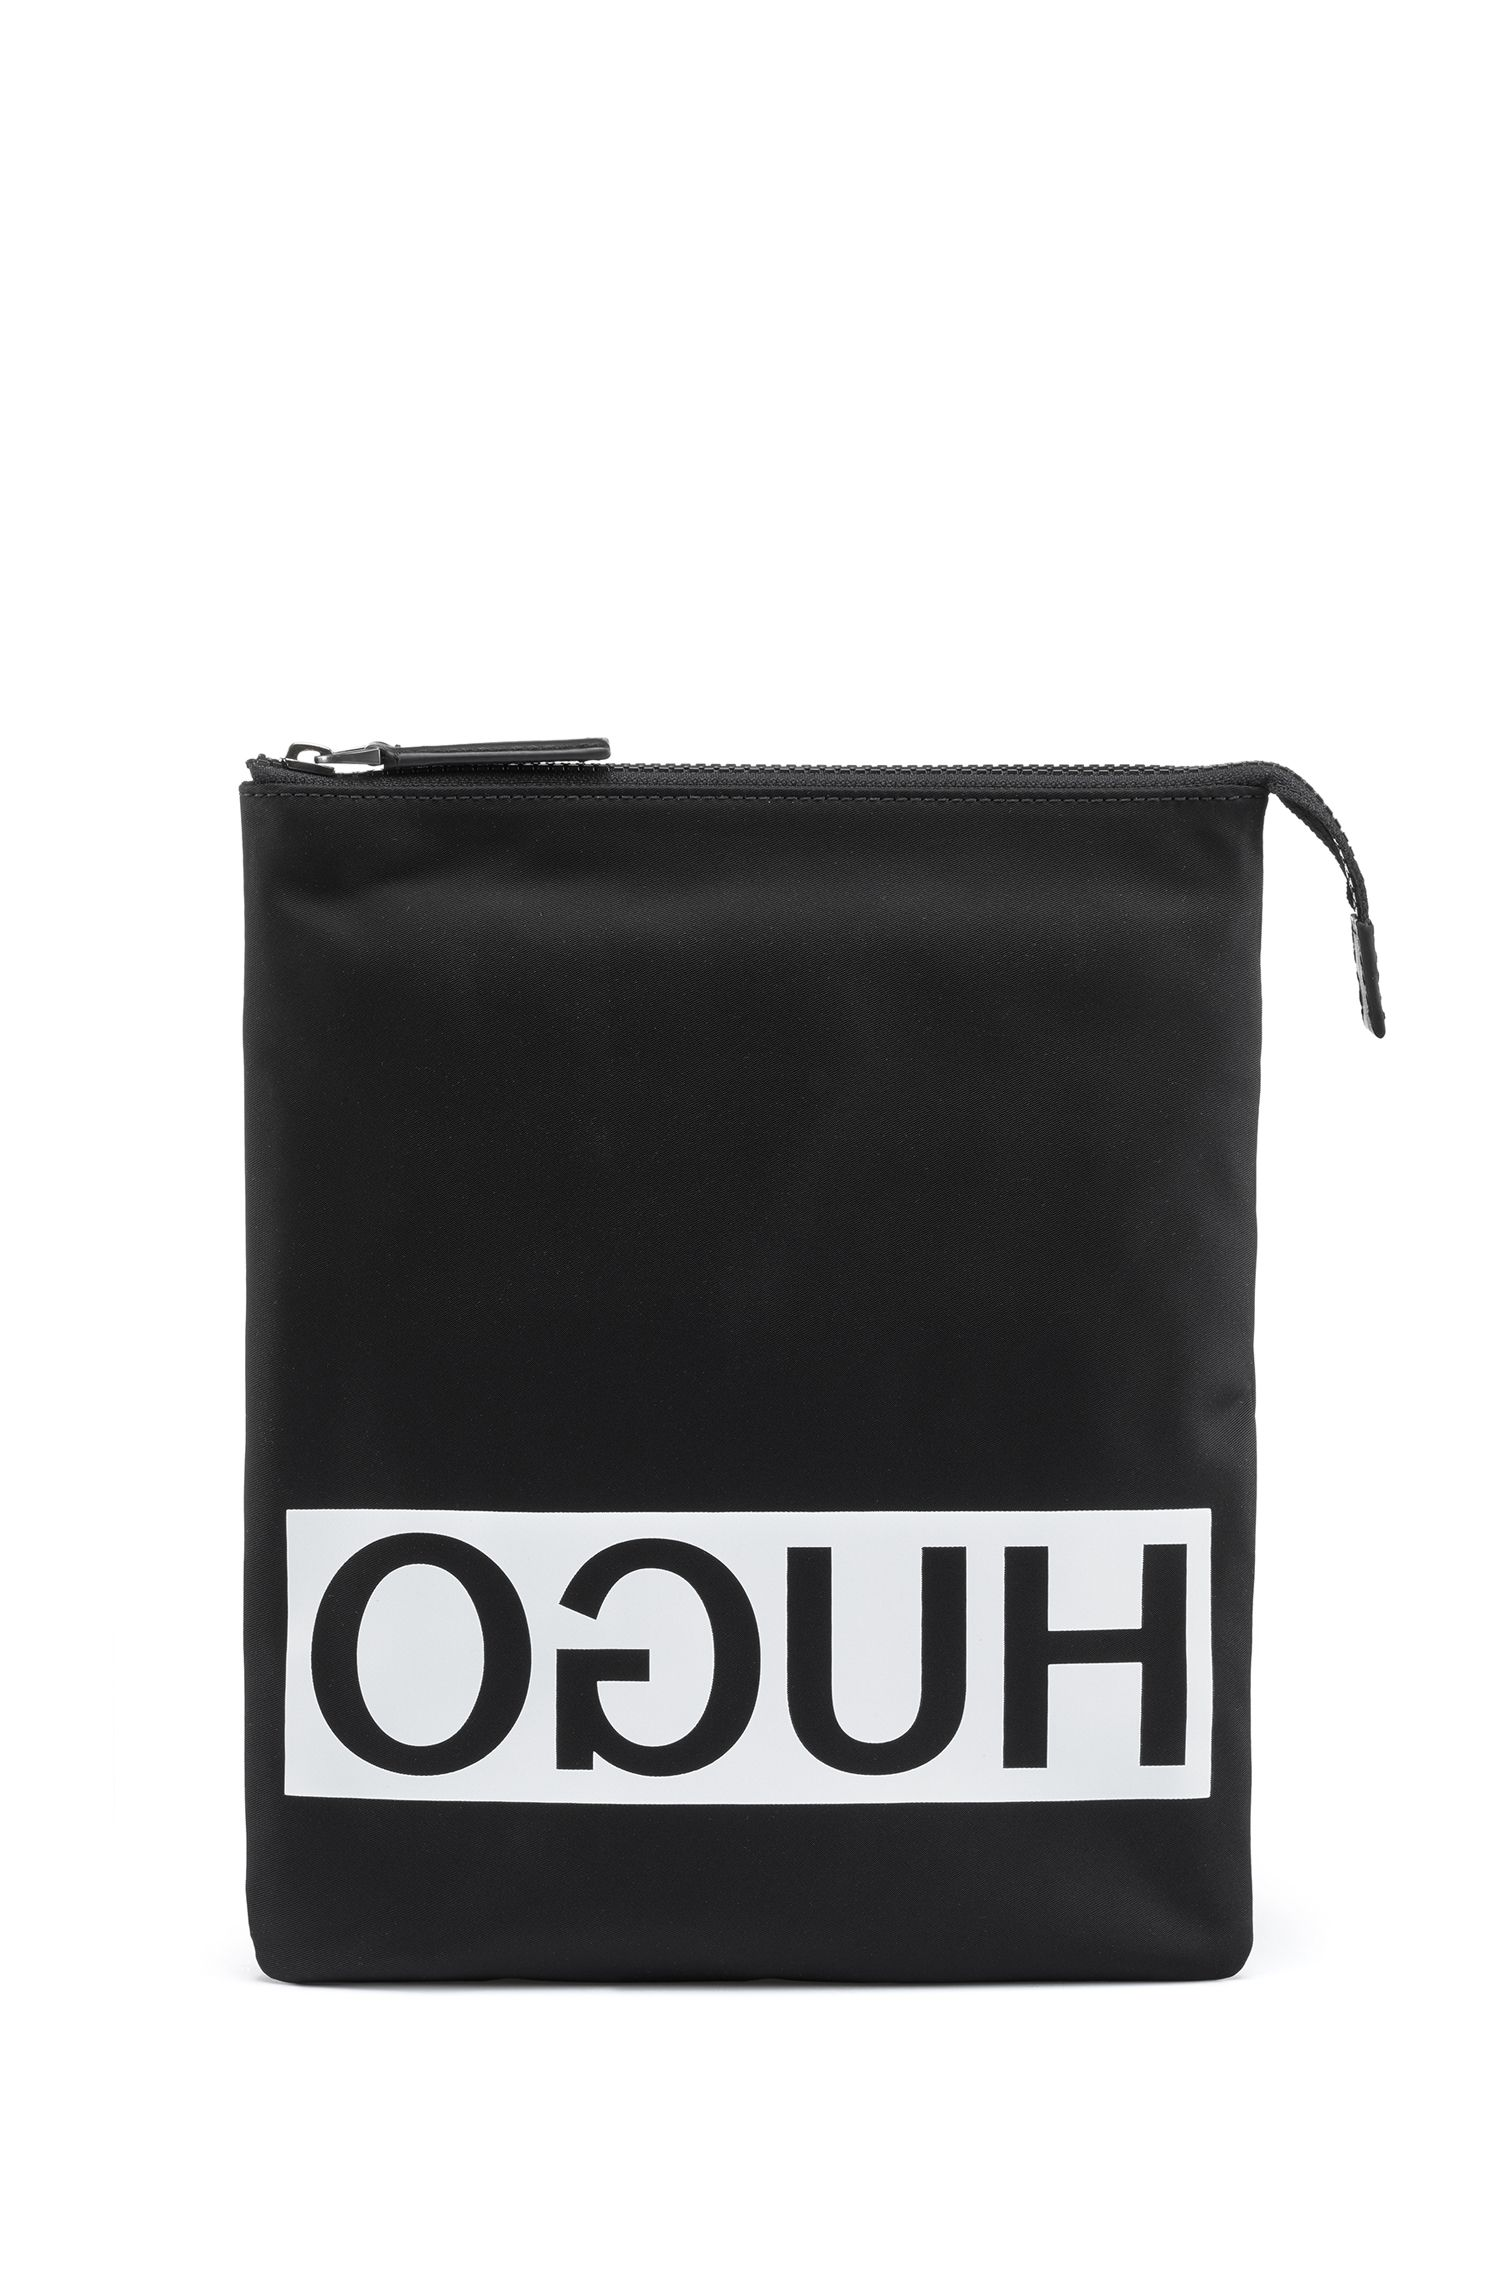 Reverse-logo envelope bag in nylon gabardine